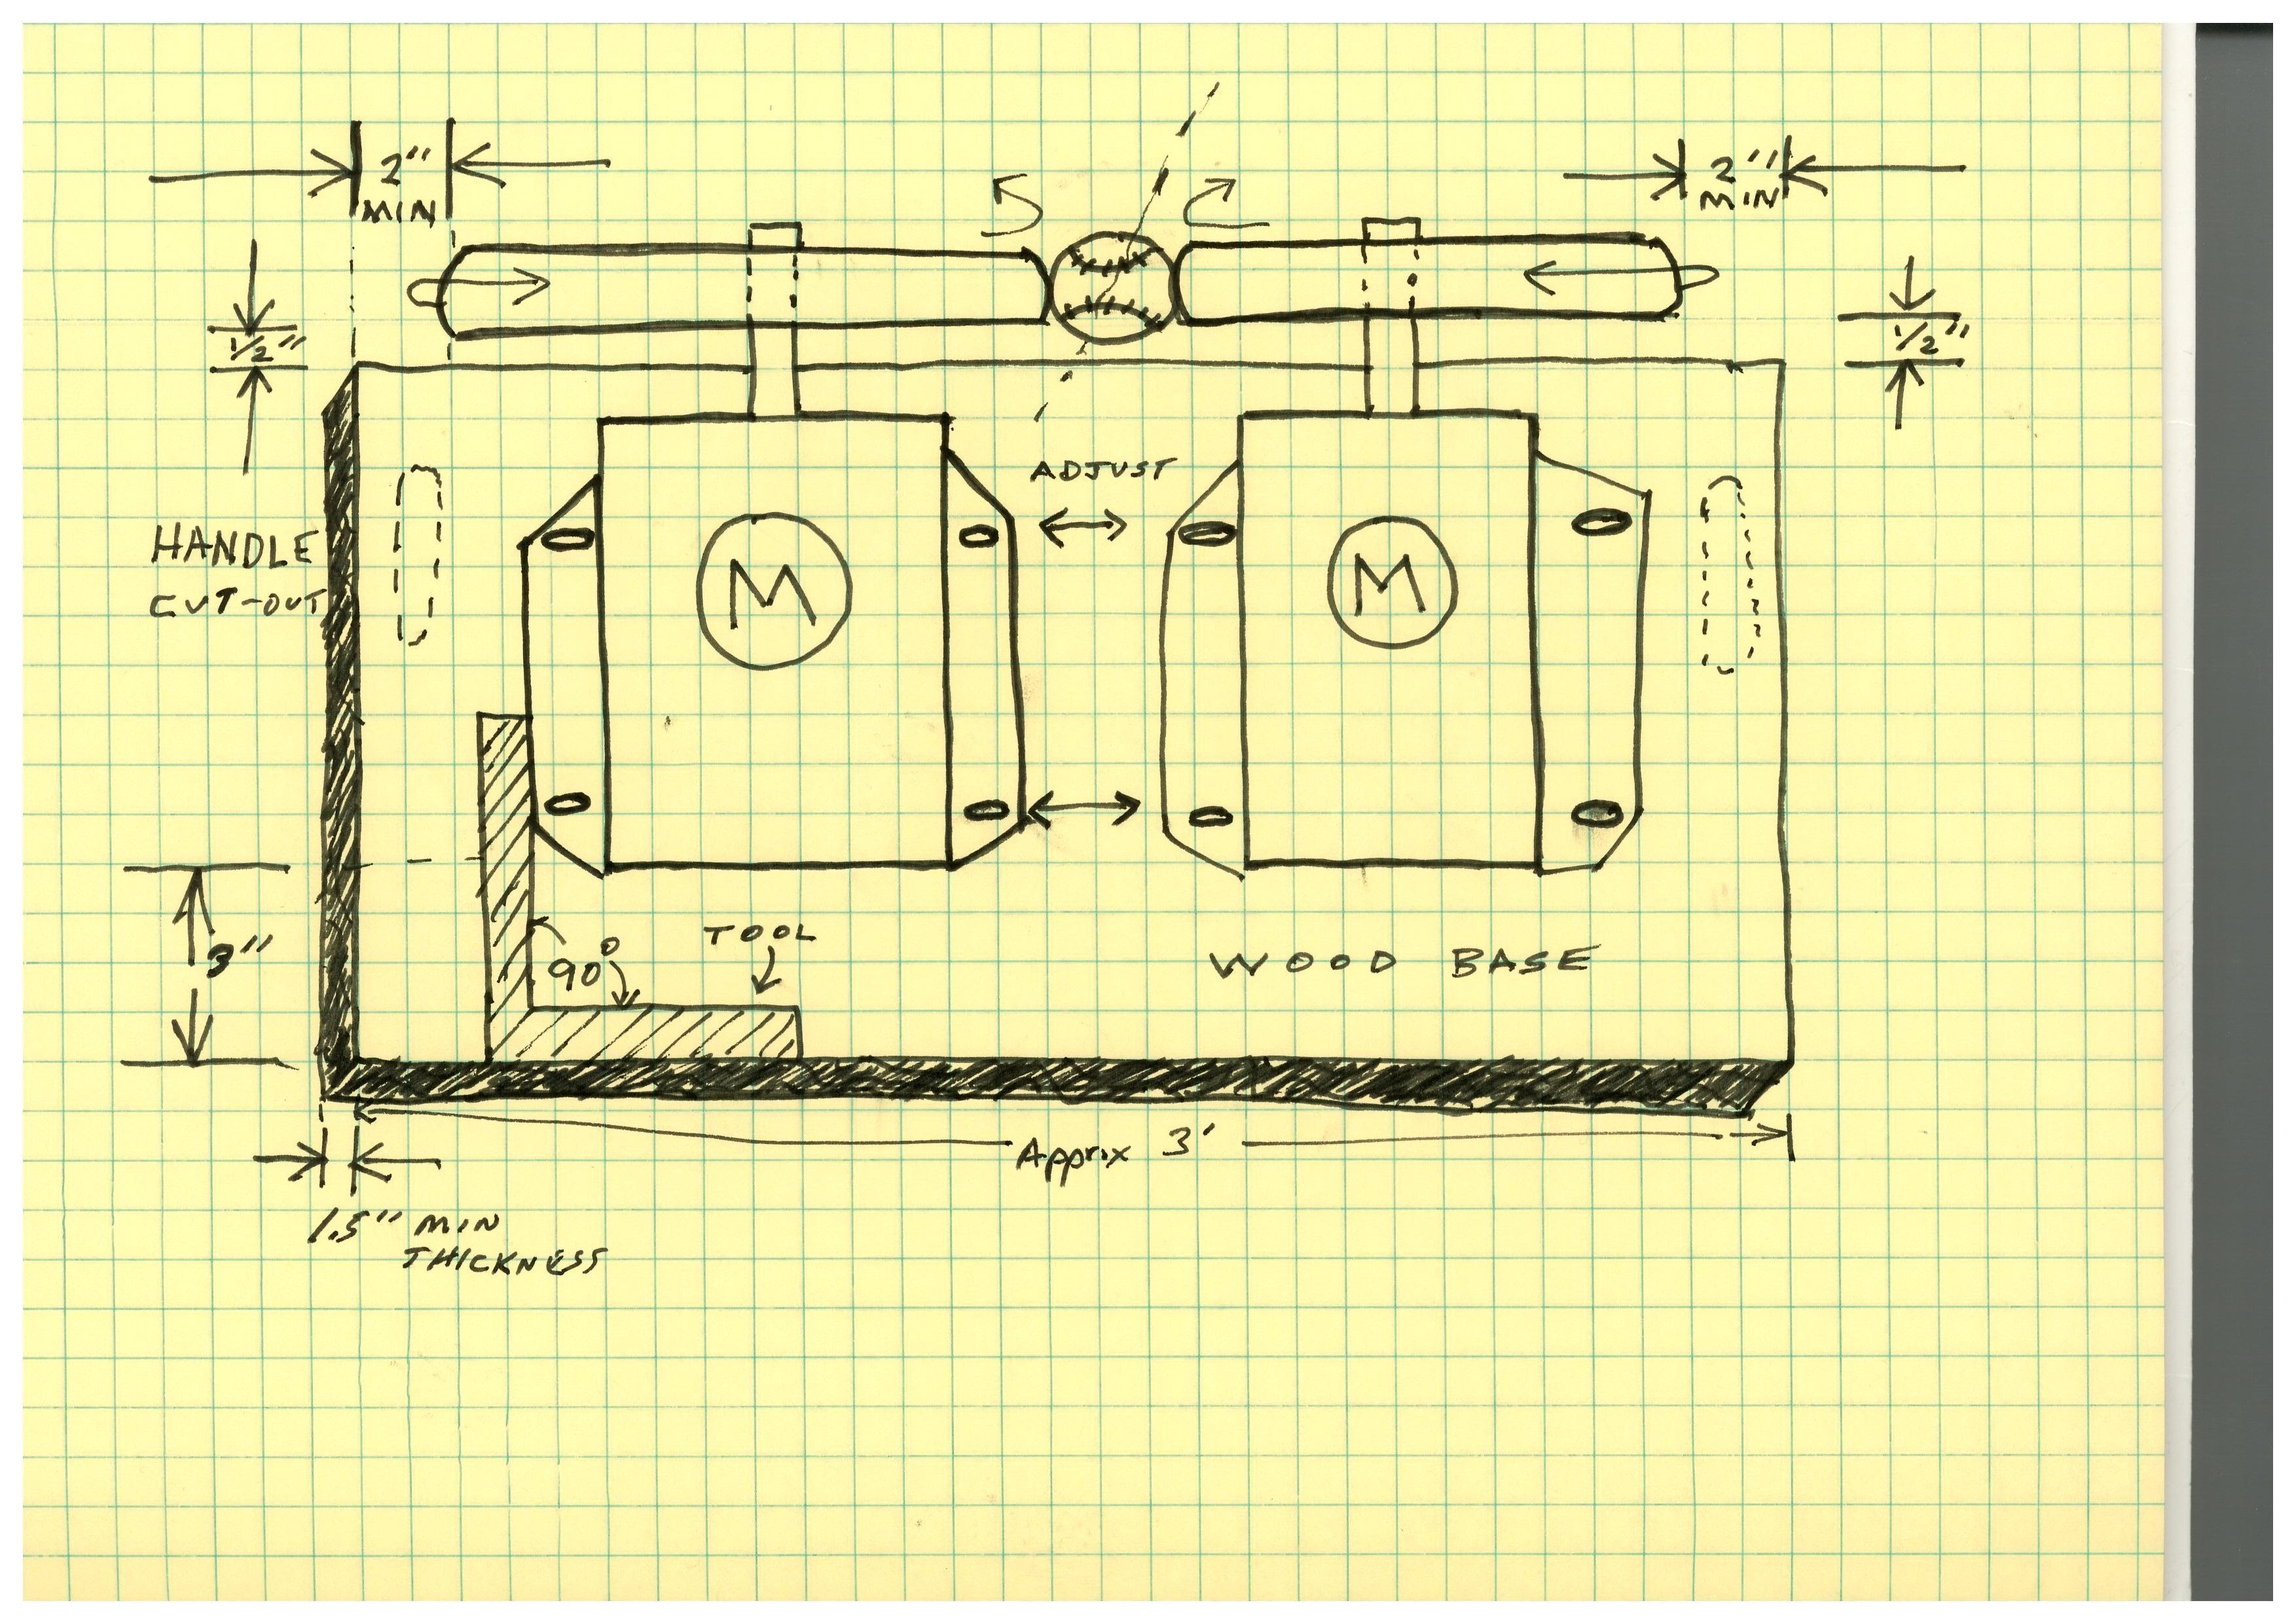 Pitch Machine1?height=291&width=420 pitching machines wiring diagram wiring diagram and schematic iron mike pitching machine wiring diagram at bakdesigns.co